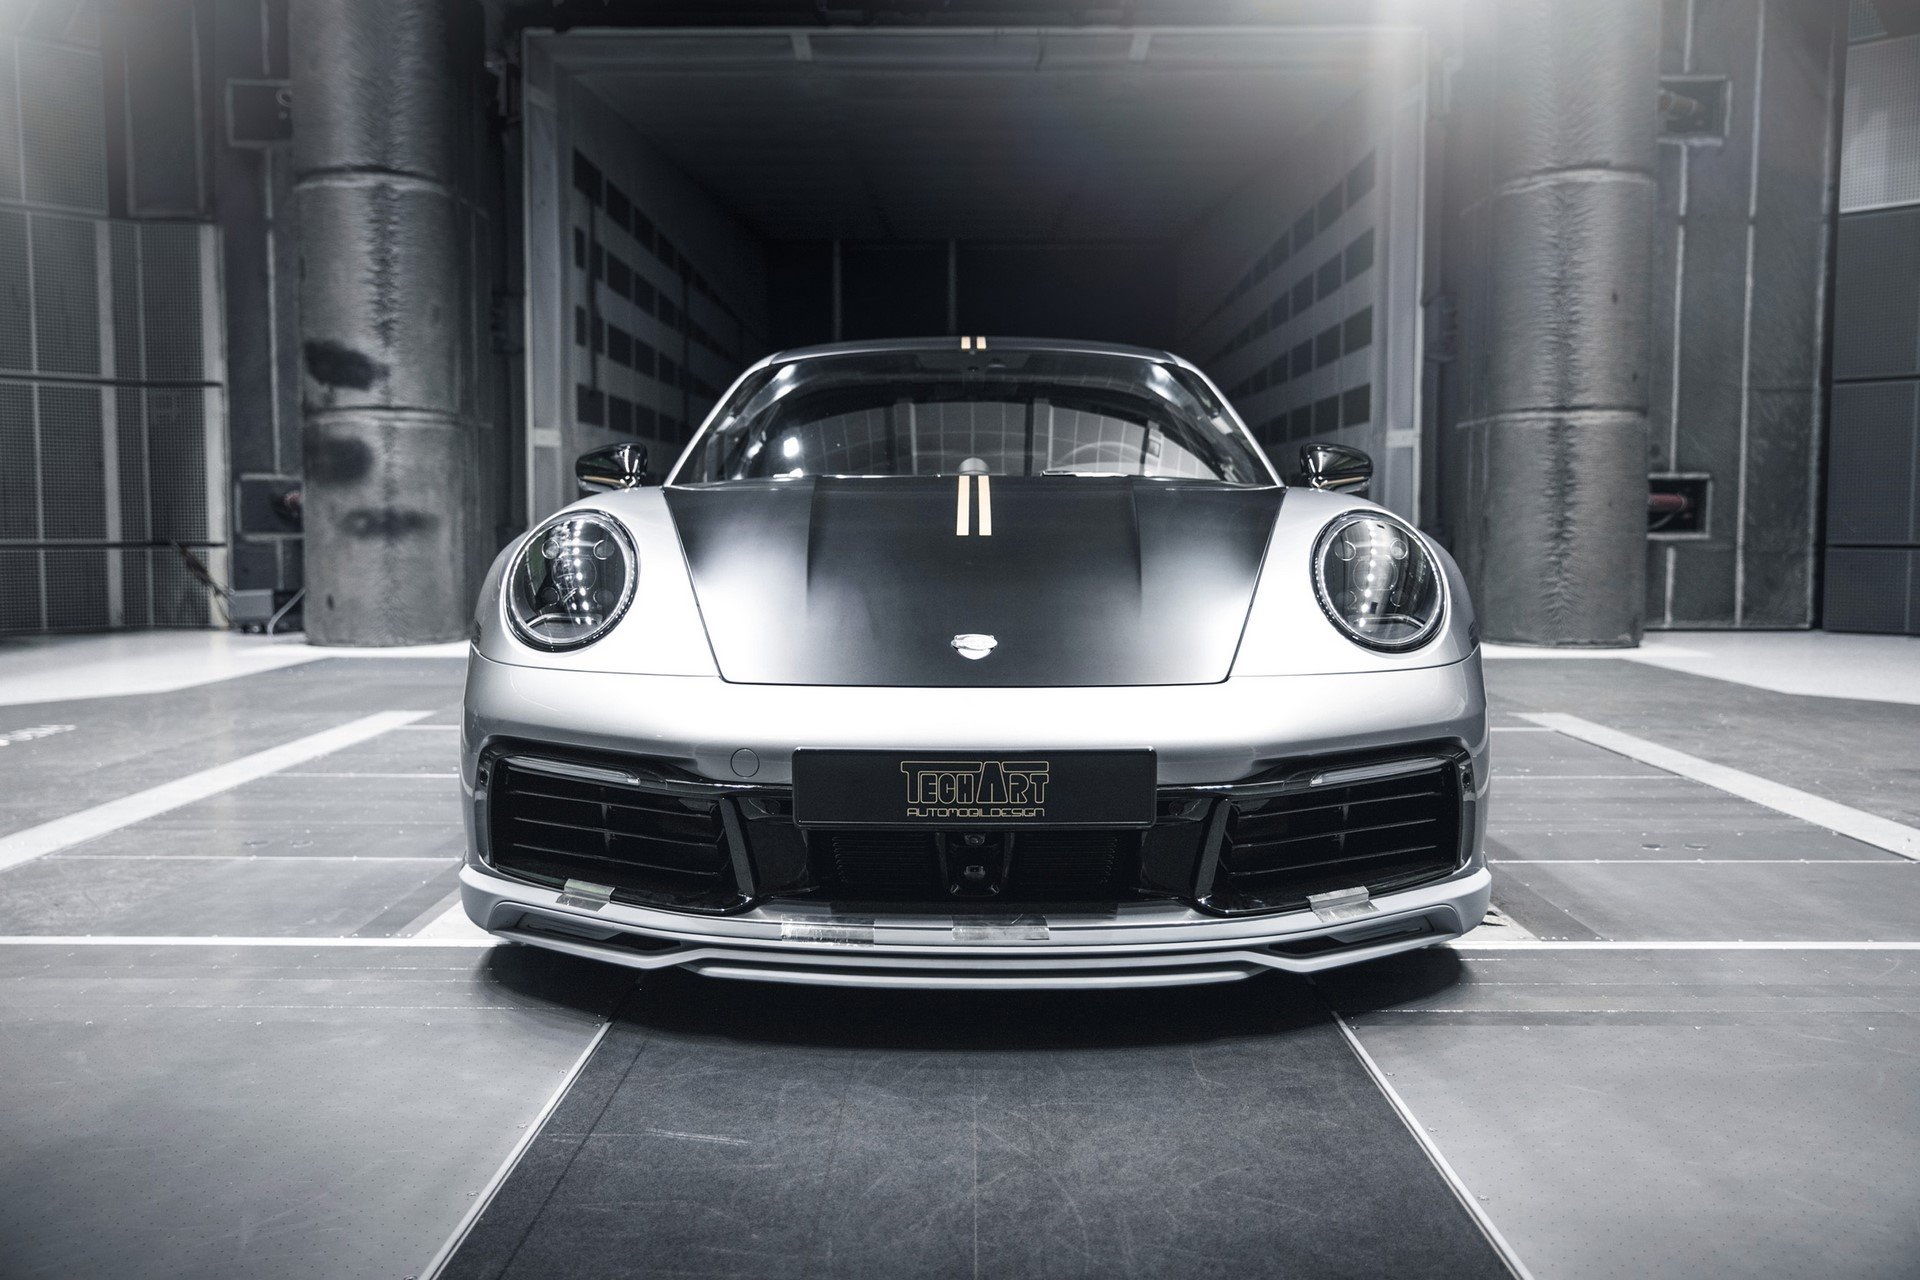 Porsche-911-Carrera-4S-by-TechArt-60